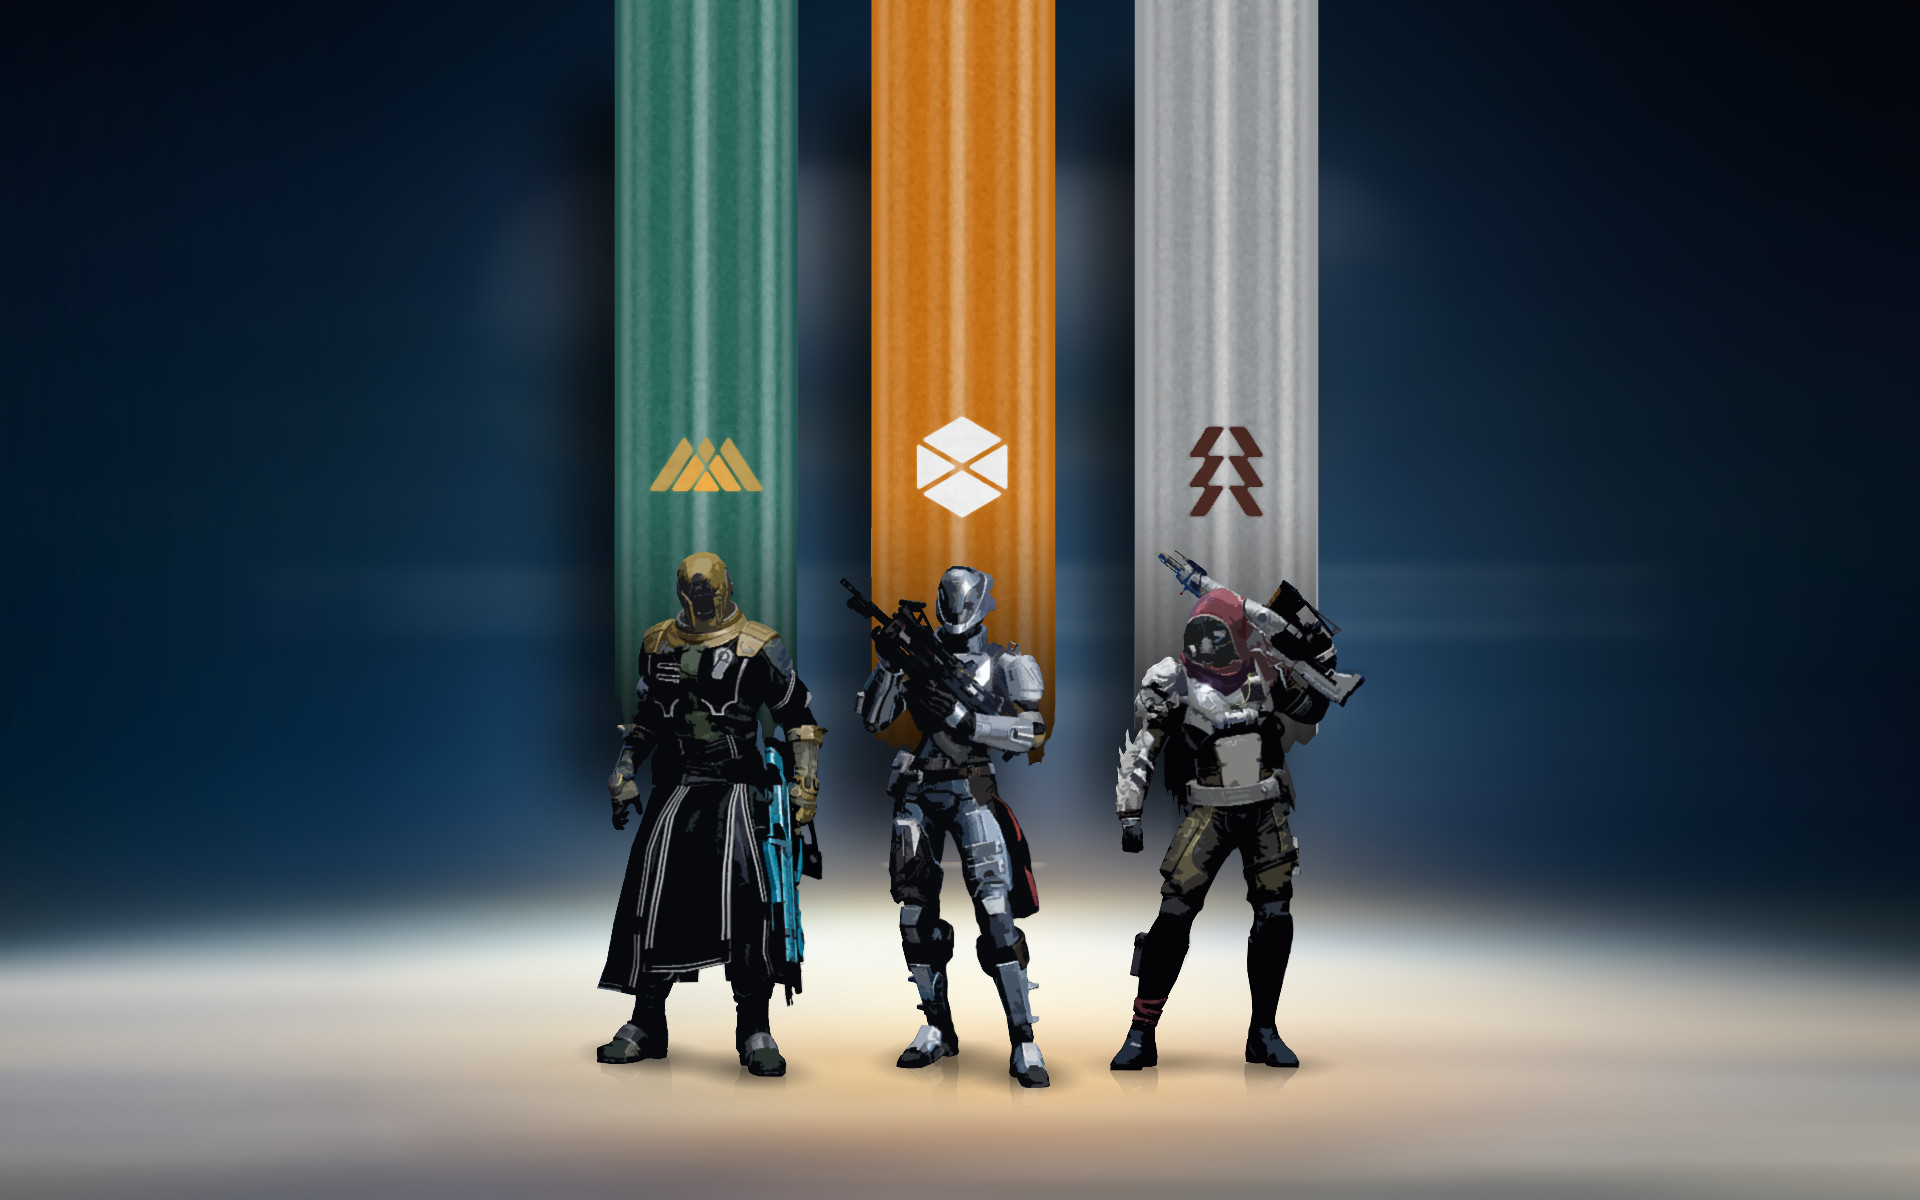 on November 11, 2015 By Stephen Comments Off on Destiny Wallpaper HD .